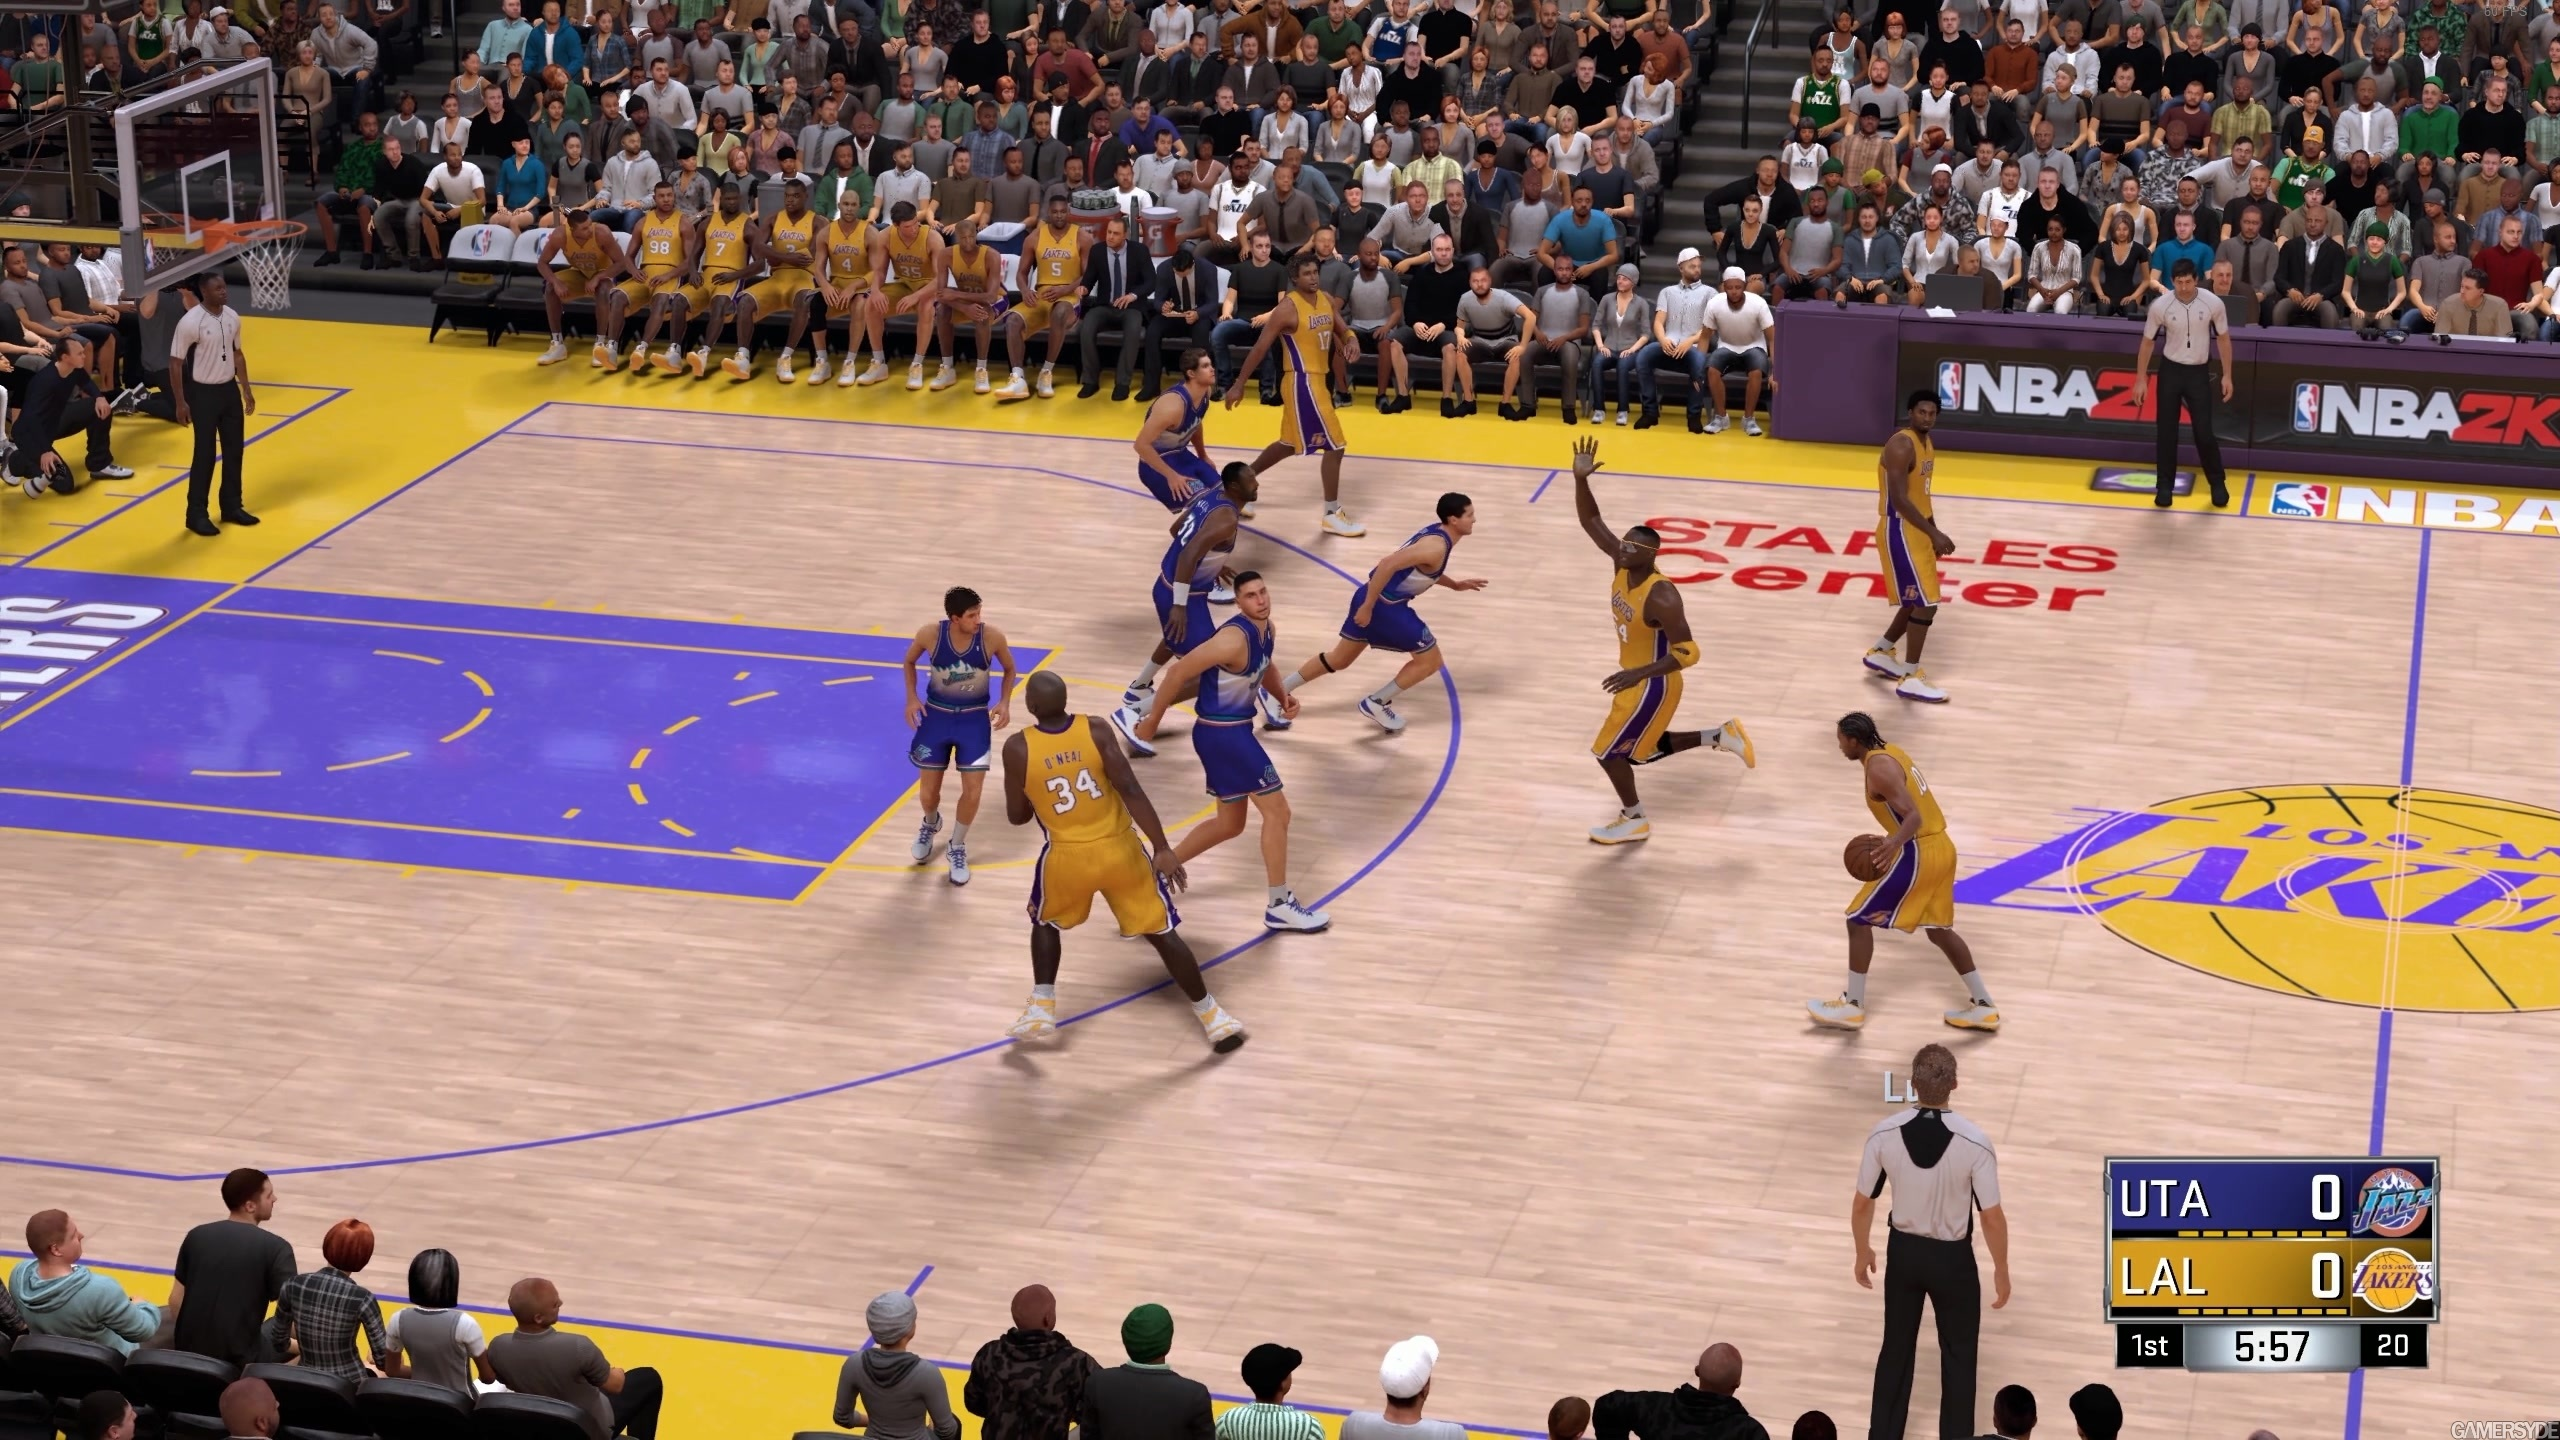 NBA 2K17 - Bulls vs Lakers - 1440p - High quality stream and download -  Gamersyde